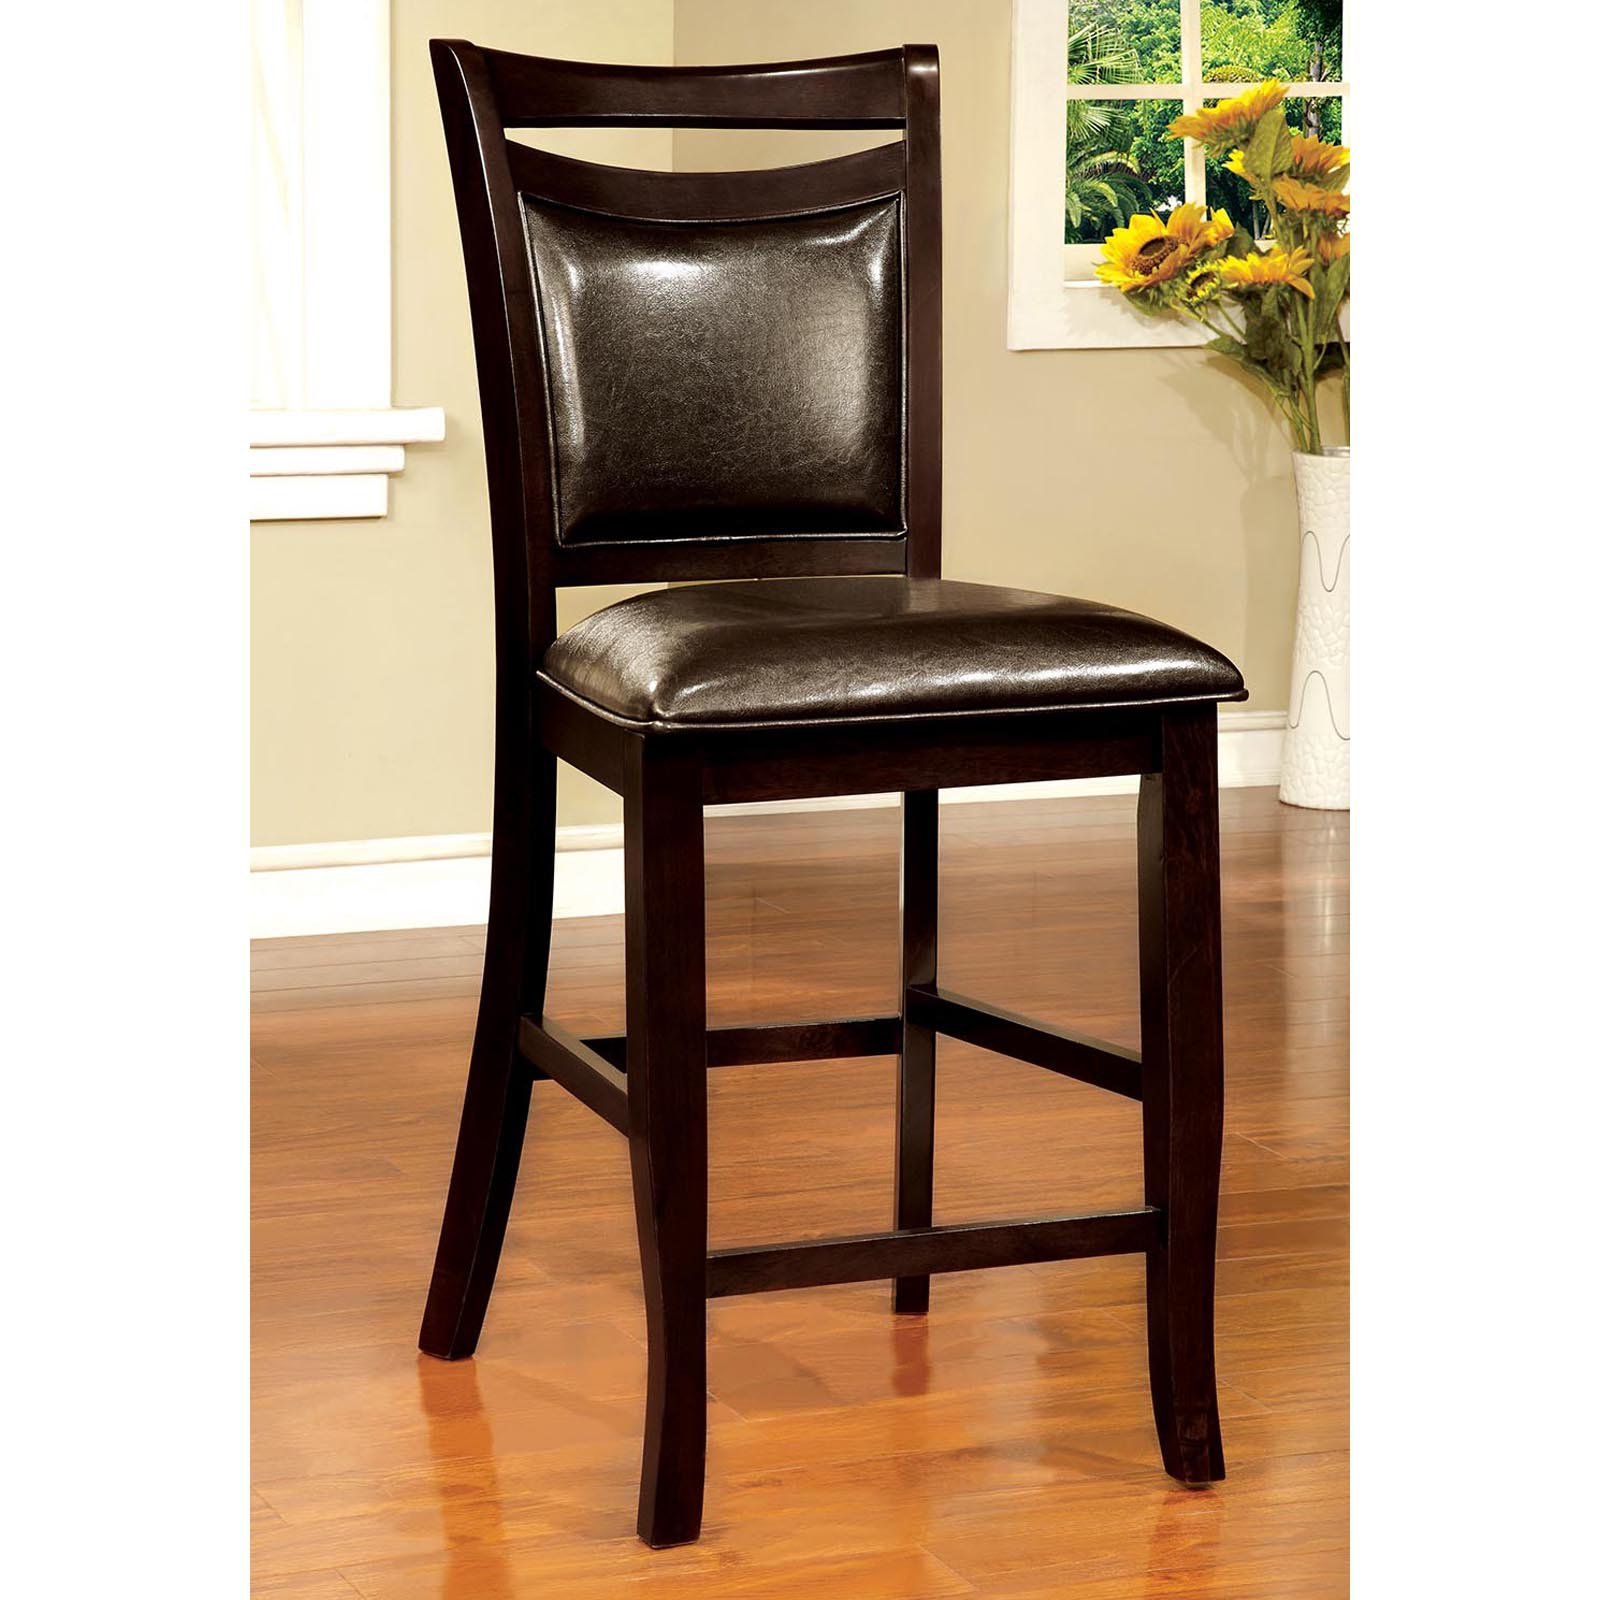 Furniture of America Ridgeway Counter Height Side Dining Chair - Set of 2